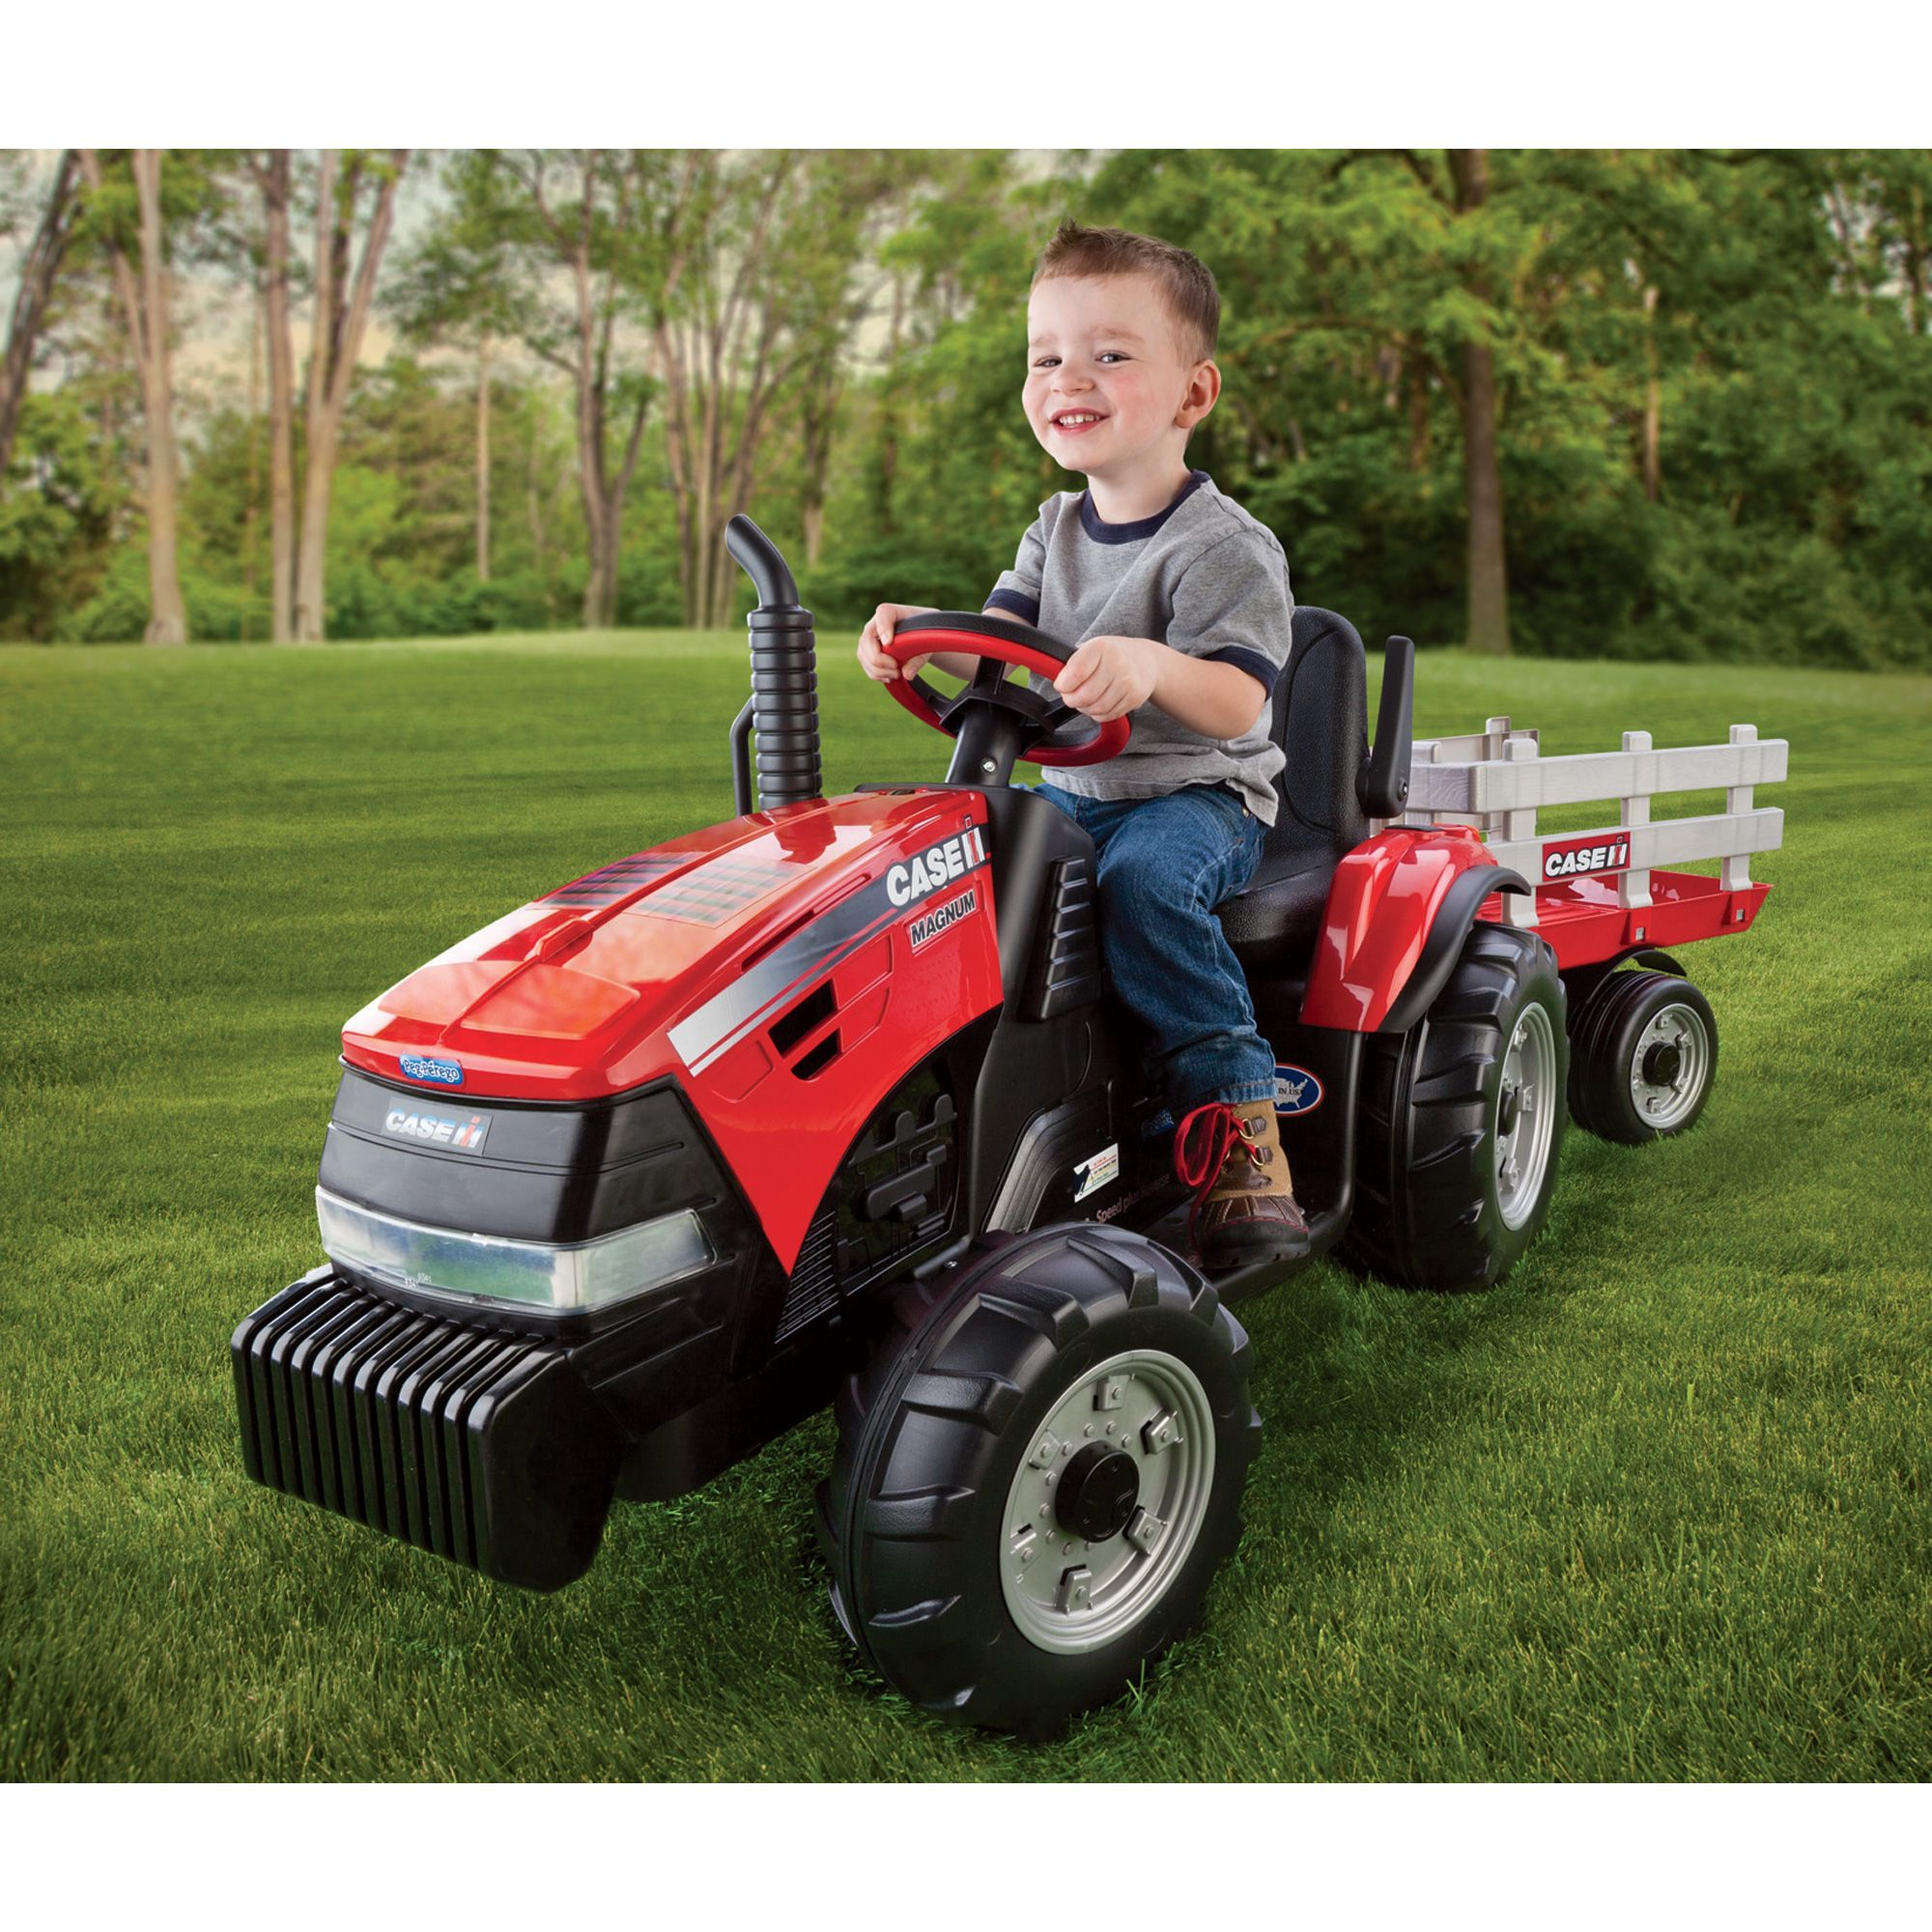 Case I H Magnum Battery Operated Ground Force 12 Volt Tractor With Trailer Model Igor0055 Diggers Ride Ons Northe Kids Ride On Case Ih Tractors